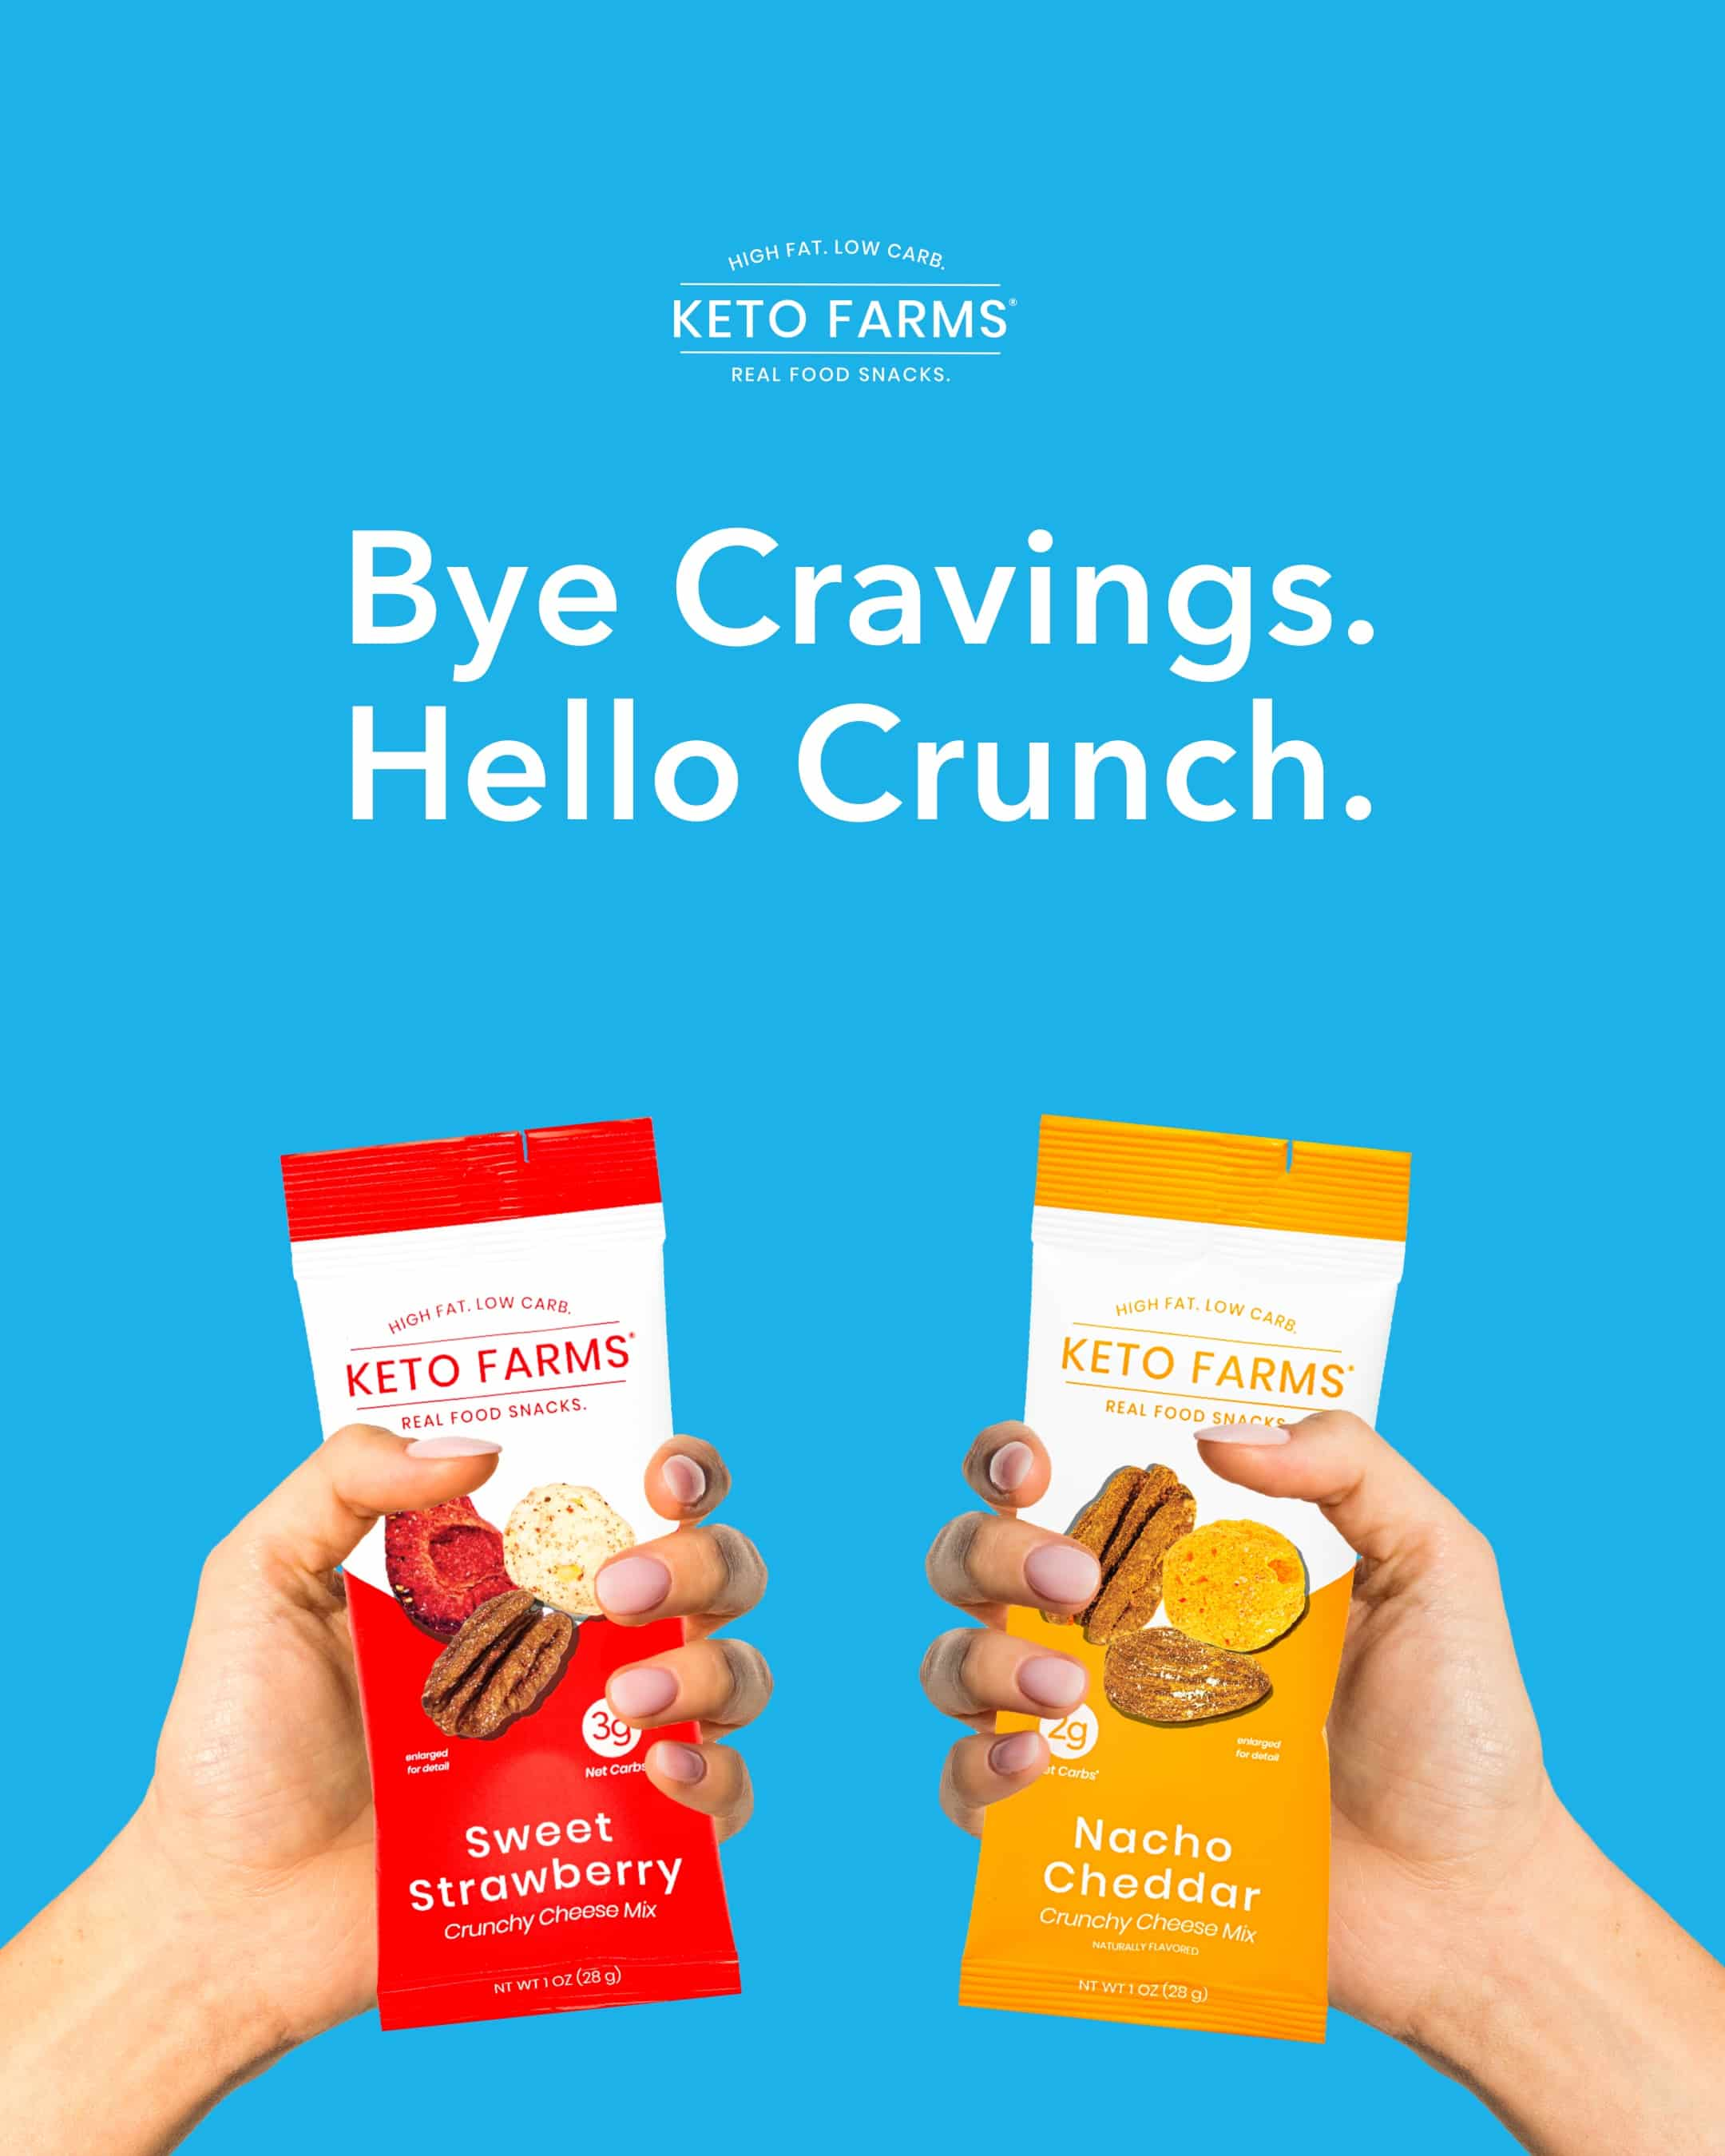 Keto Farms Launches New Keto Cheese Mixes in Portion Control Snack Packs